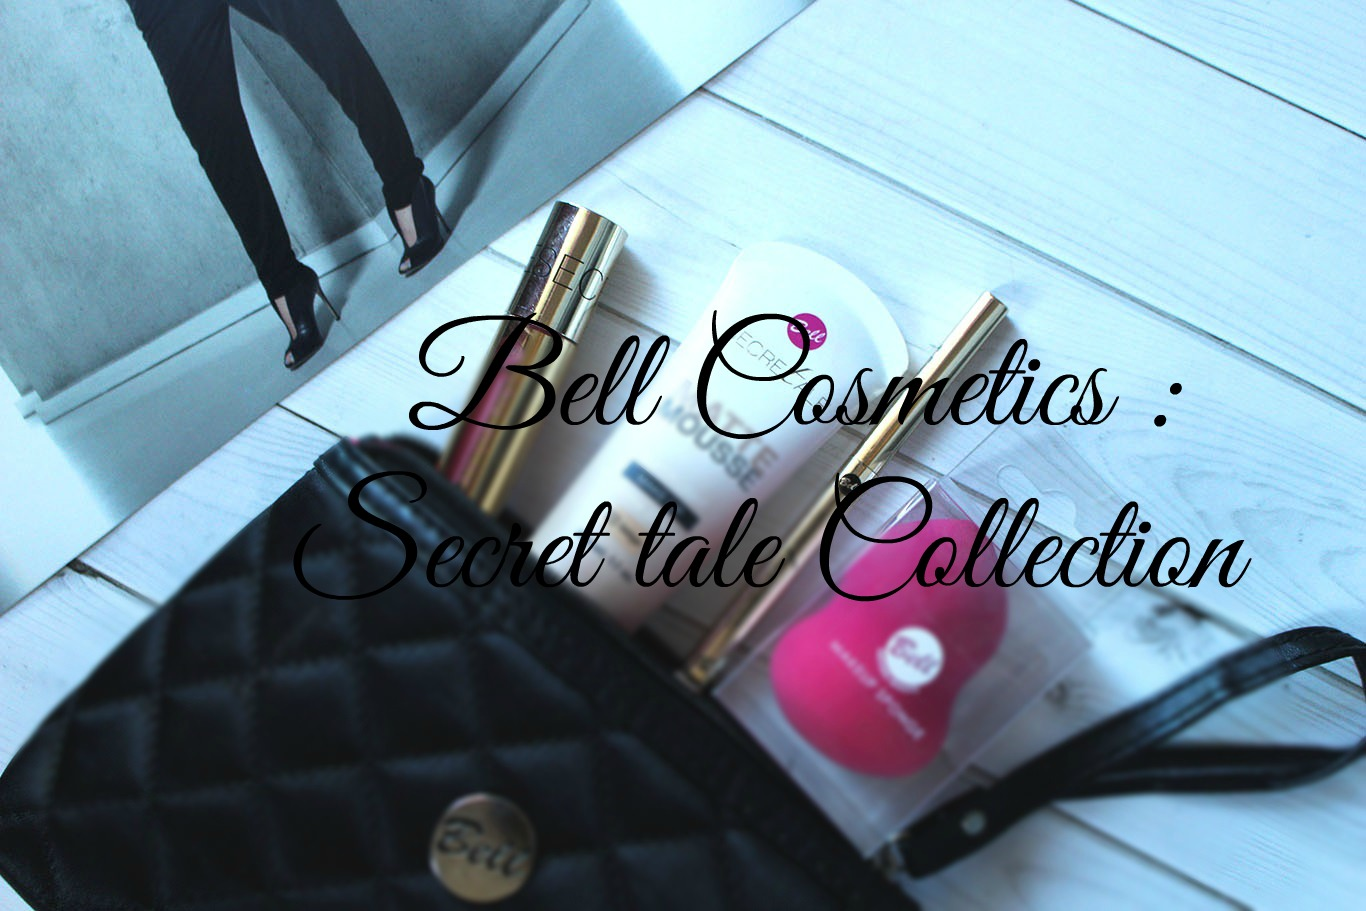 Bell cosmetics : Secret tale Collection